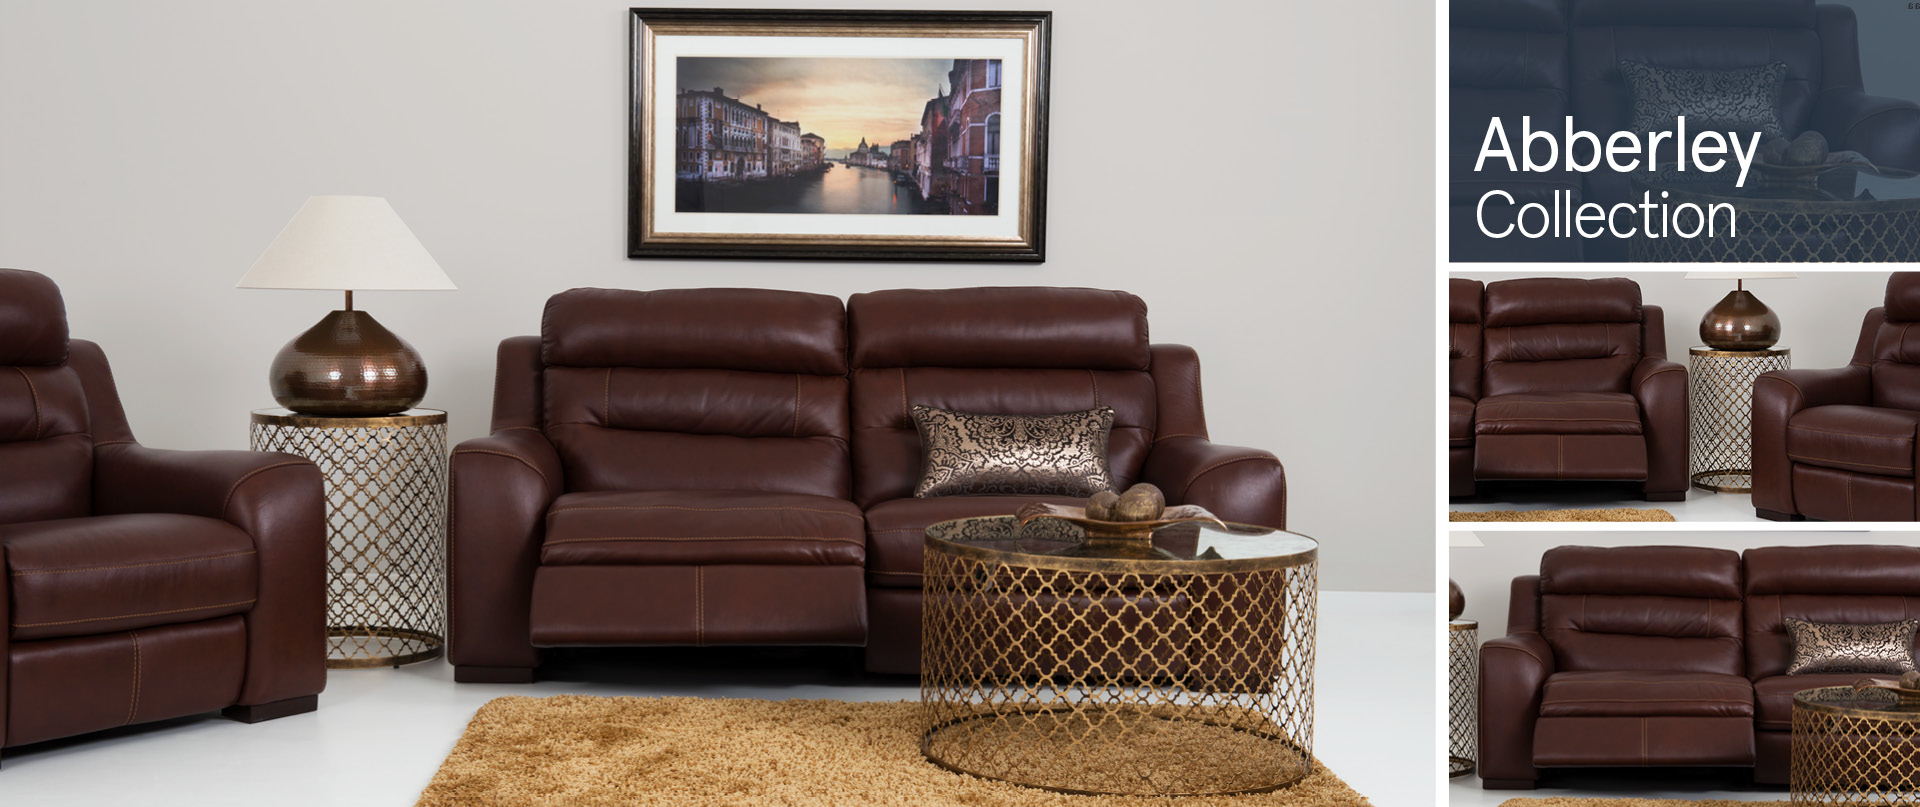 Abberley Leather Sofa Ranges